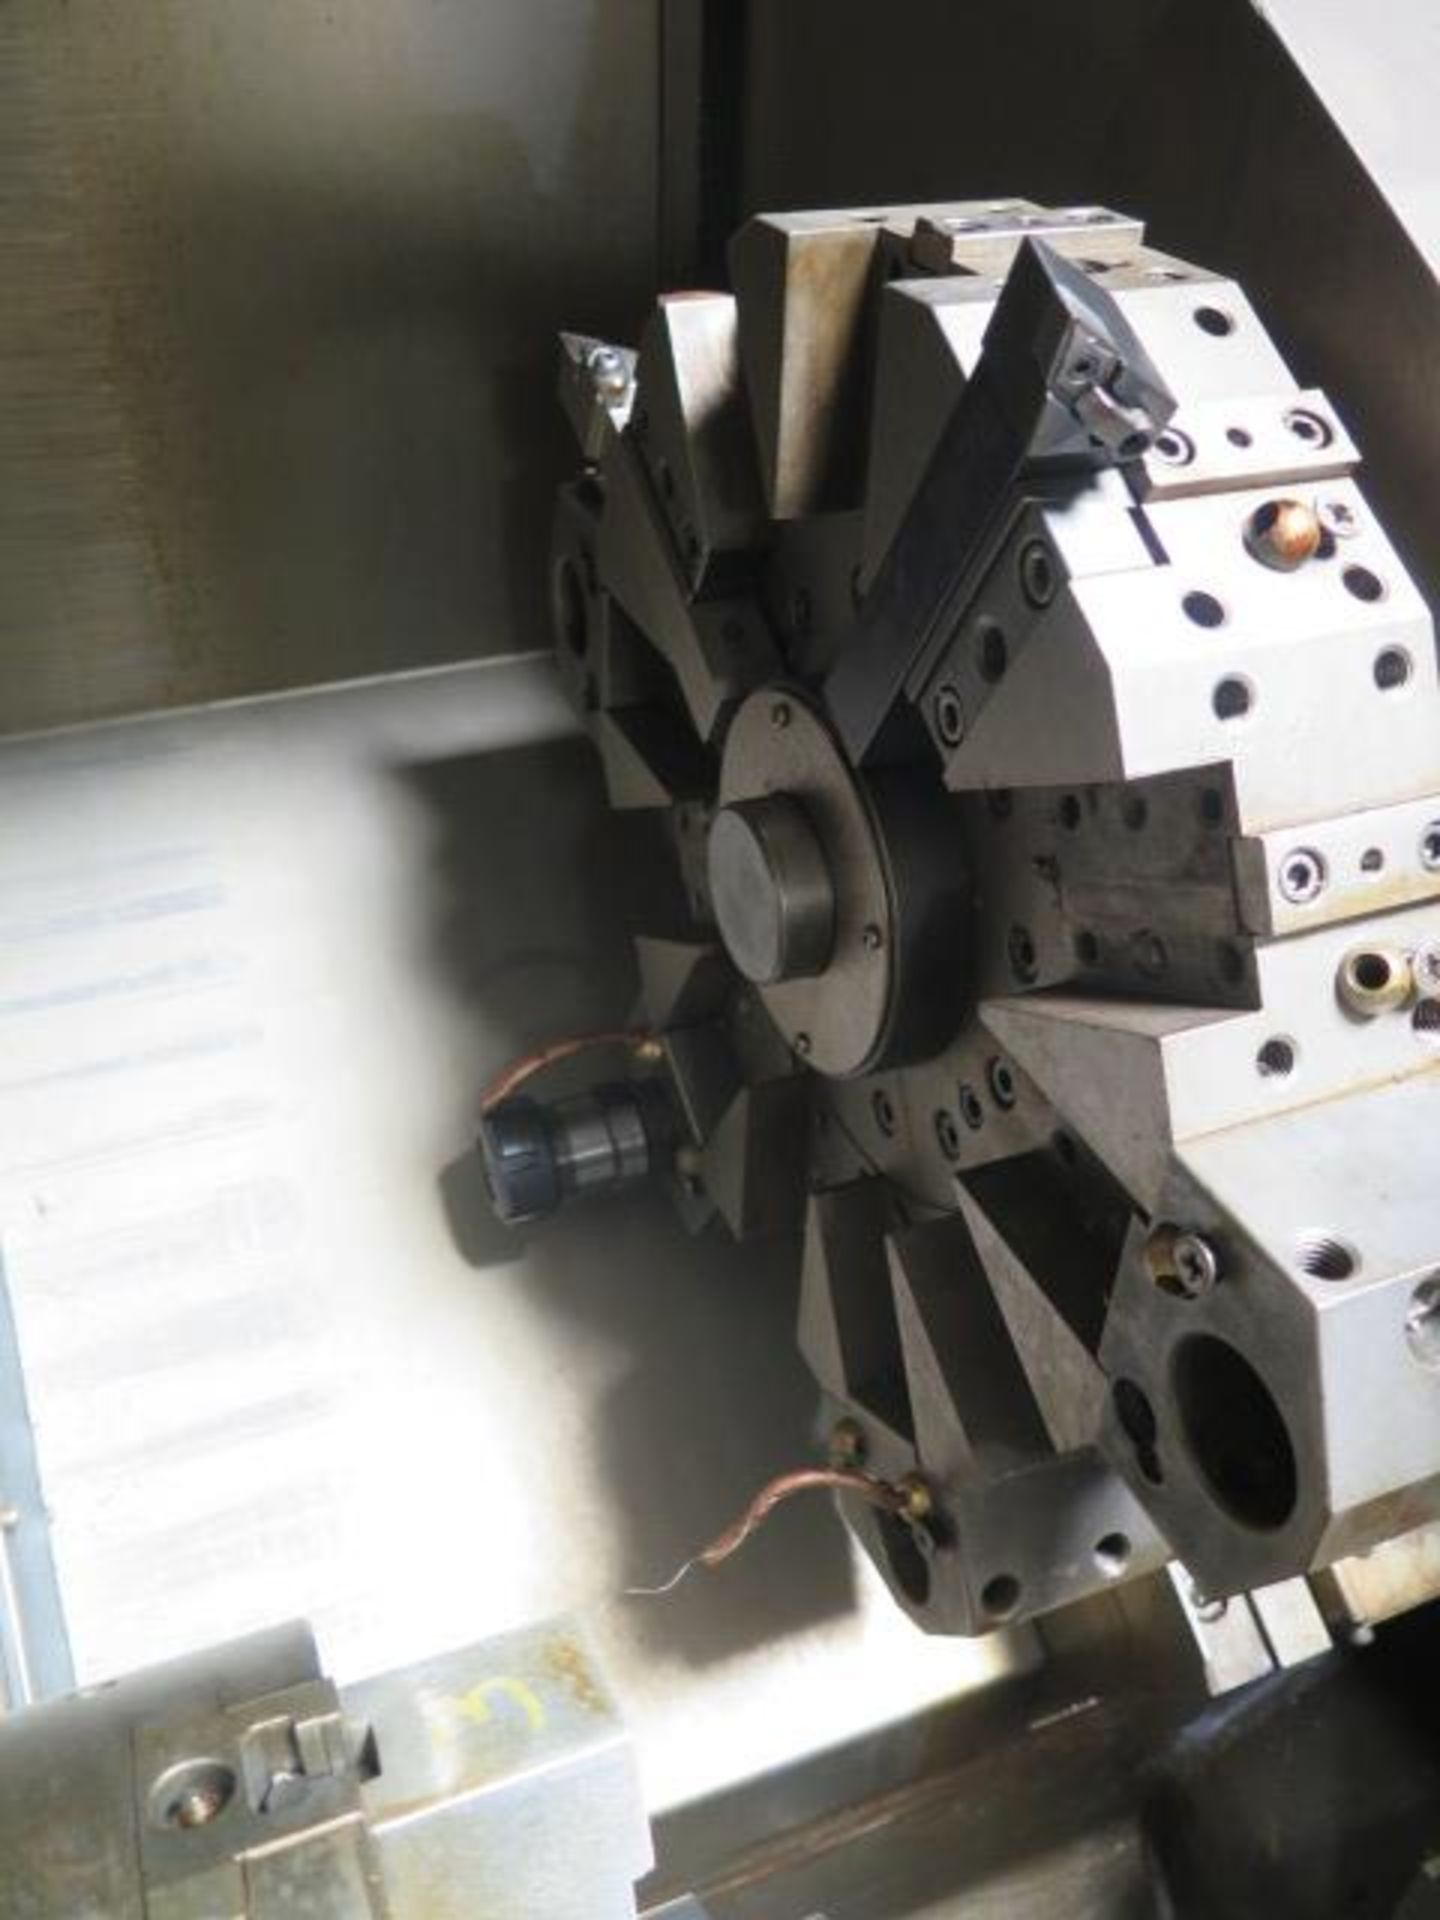 1996 Daewoo PUMA 8S CNC Turning Center s/n PM8S0500 w/ Mits Controls, Tool Presetter, SOLD AS IS - Image 8 of 14